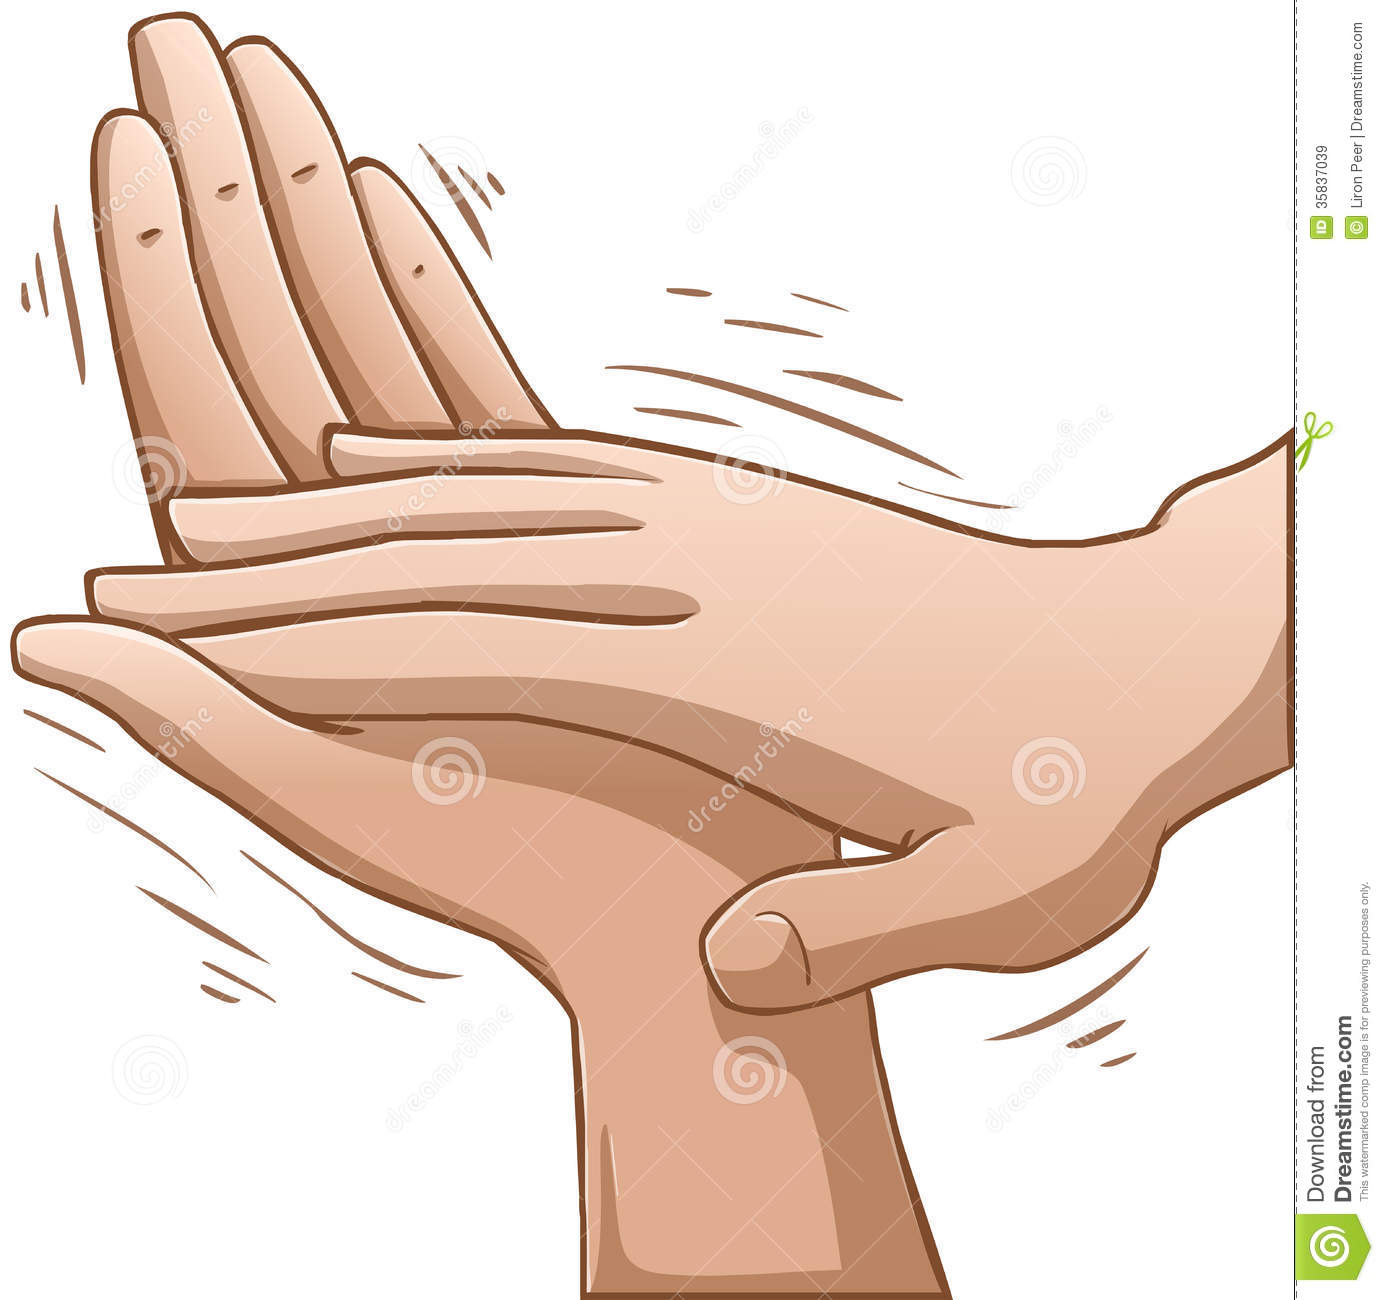 Applause Clipart Clapping Hands Royalty -Applause Clipart Clapping Hands Royalty Free-4